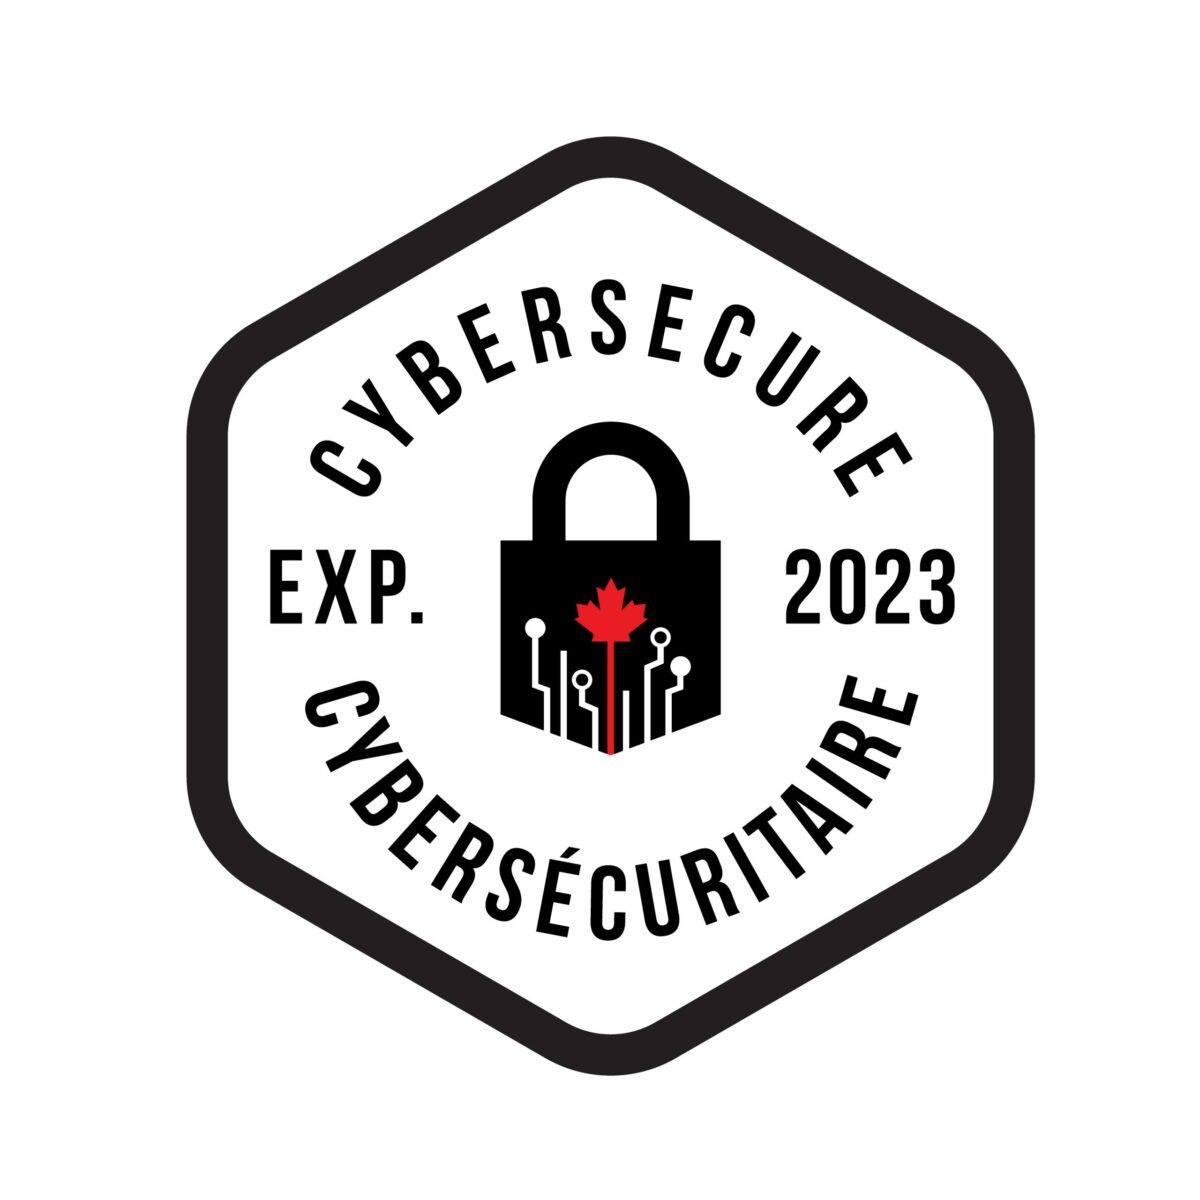 Cyber-Secure-Certification_2023- 356 it solutions